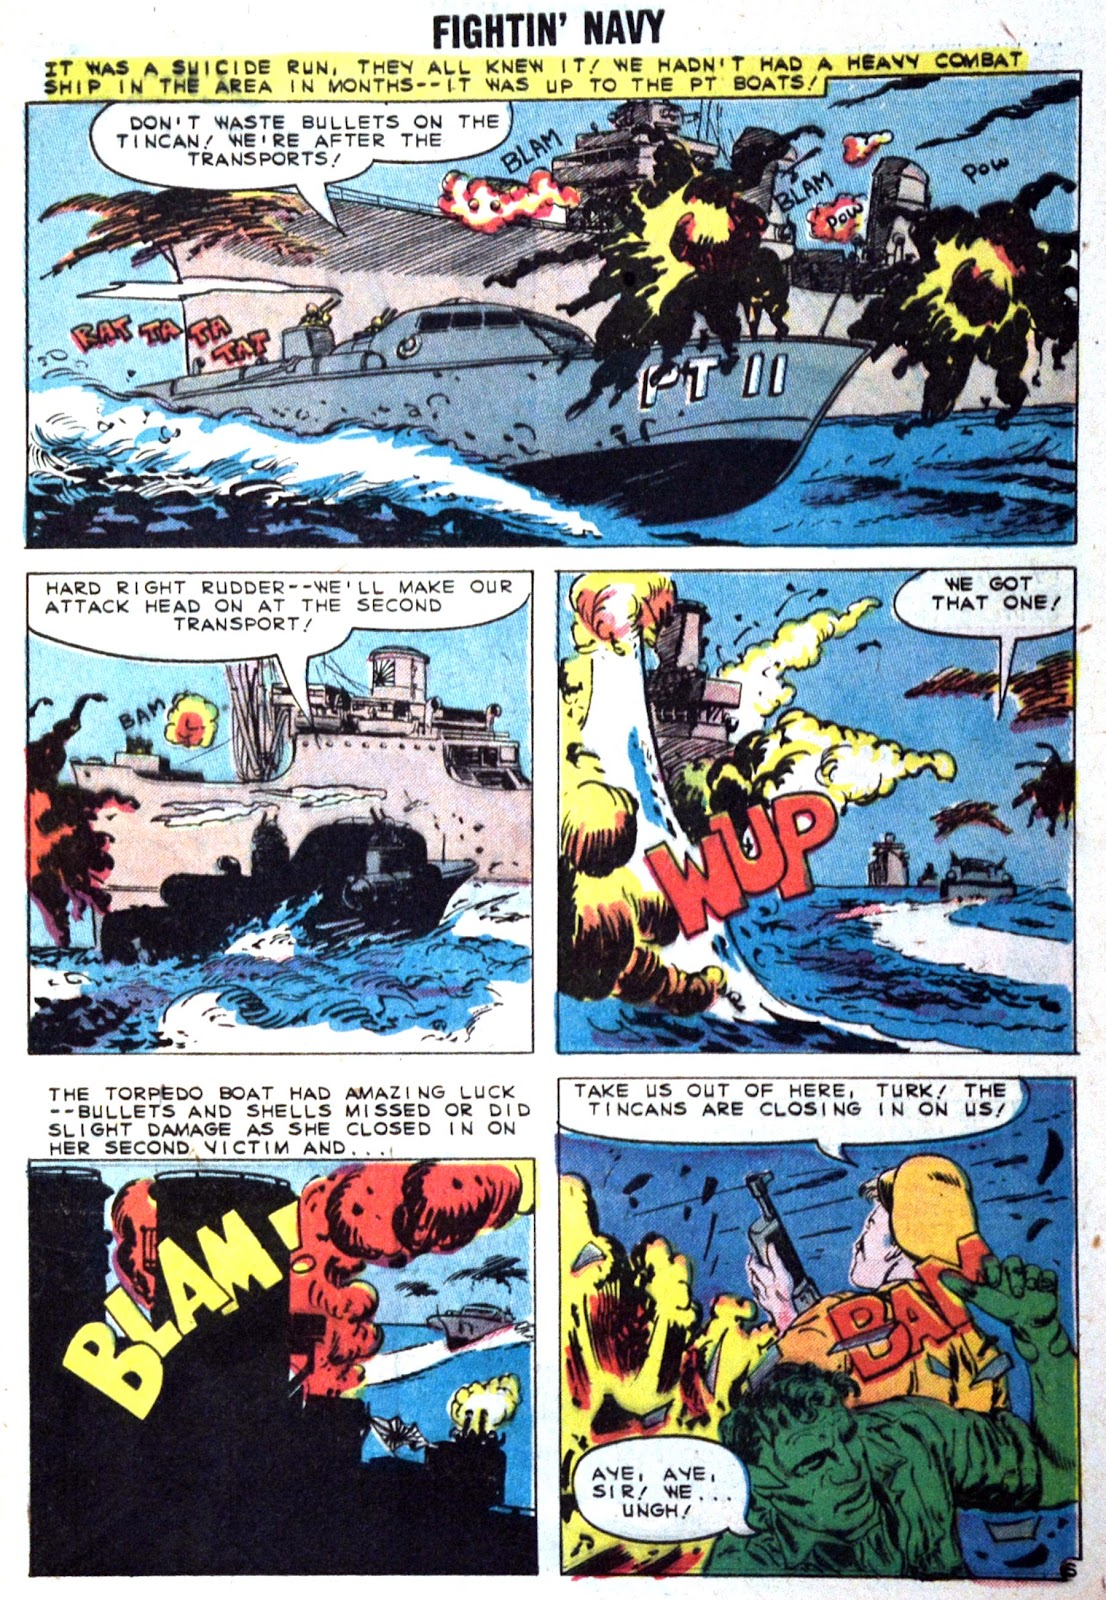 Read online Fightin' Navy comic -  Issue #89 - 9